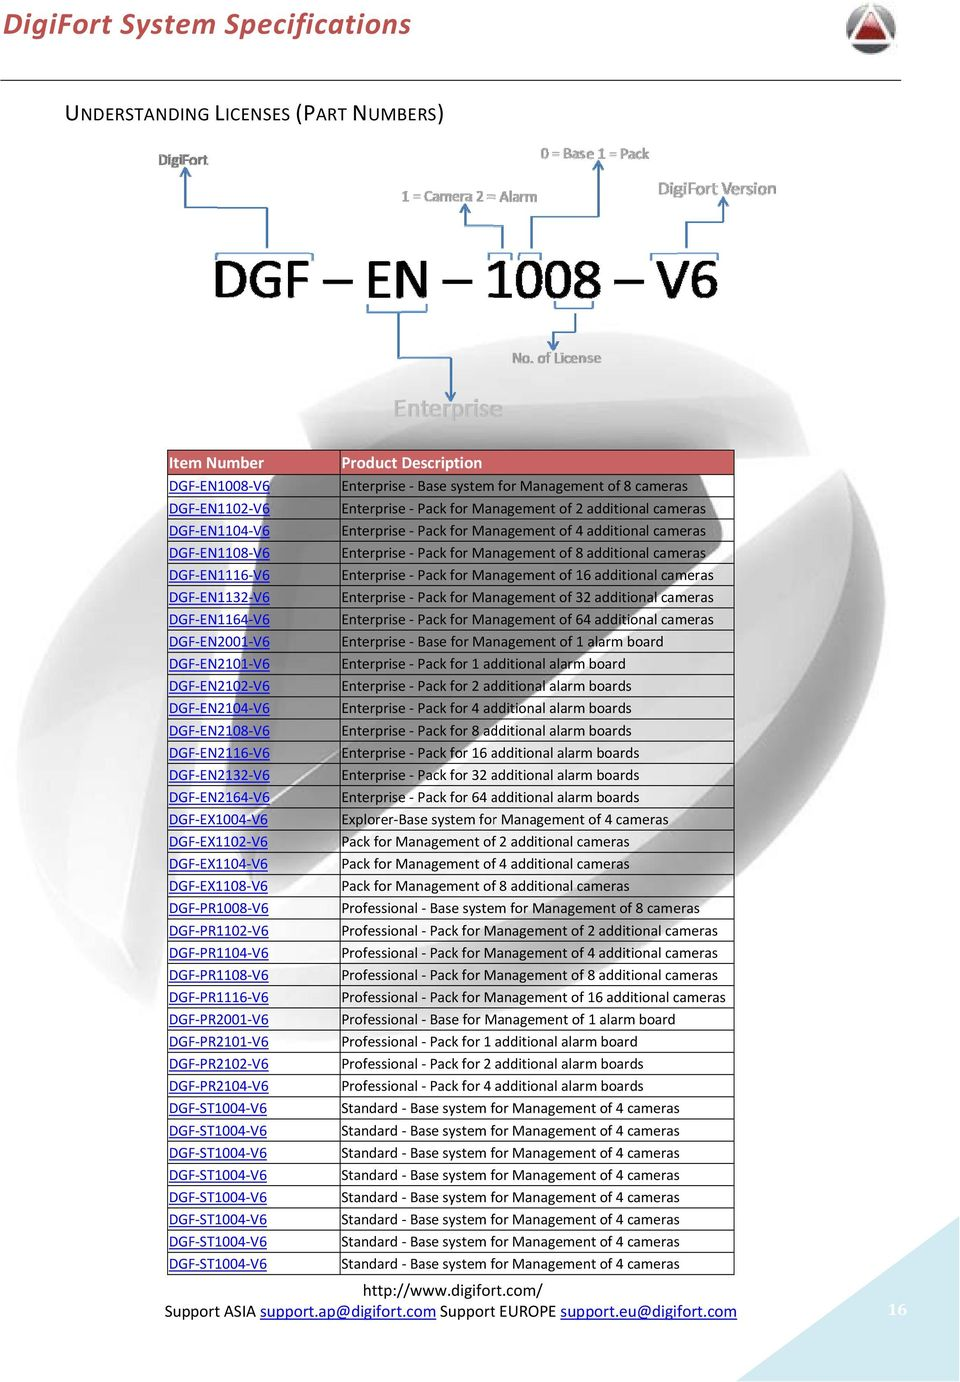 DGF-EN1116-V6 Enterprisee - Pack for Management of 16 additional cameras DGF-EN1132-V6 Enterprisee - Pack for Management of 32 additional cameras DGF-EN1164-V6 Enterprisee - Pack for Management of 64